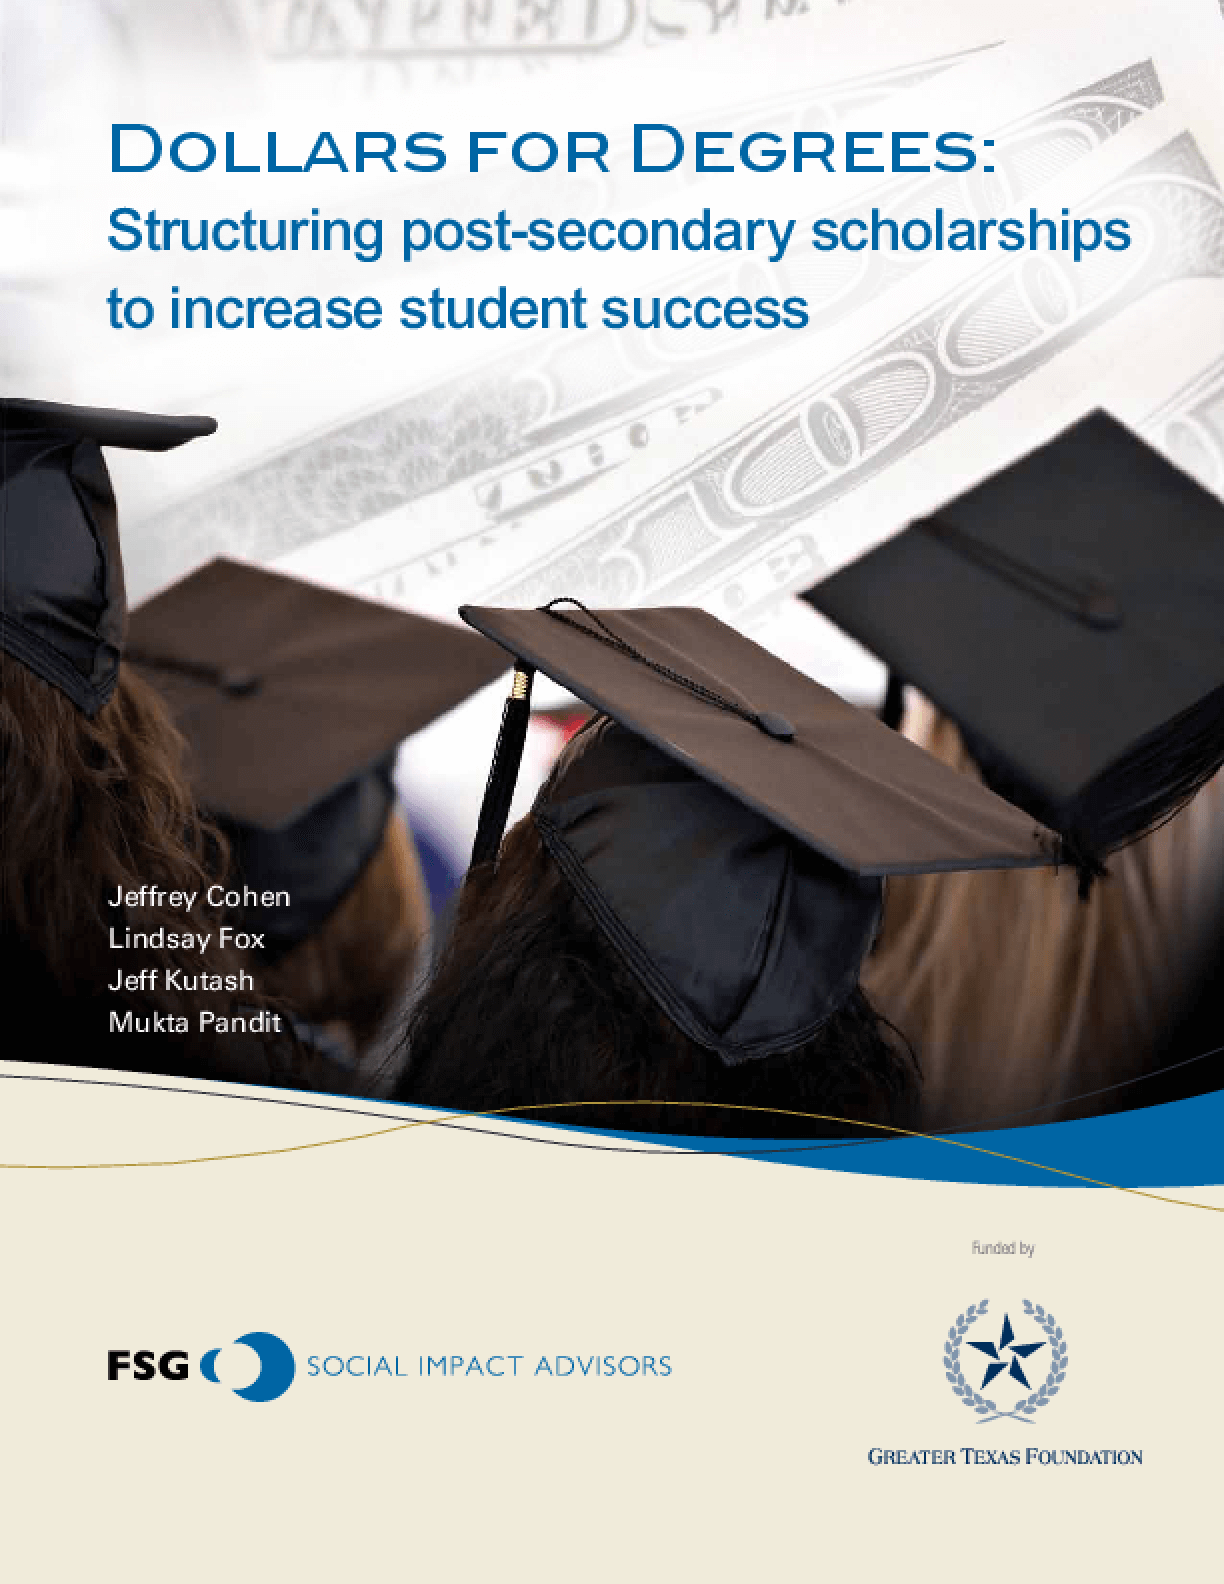 Dollars for Degrees: Structuring Post-Secondary Scholarships to Increase Student Success